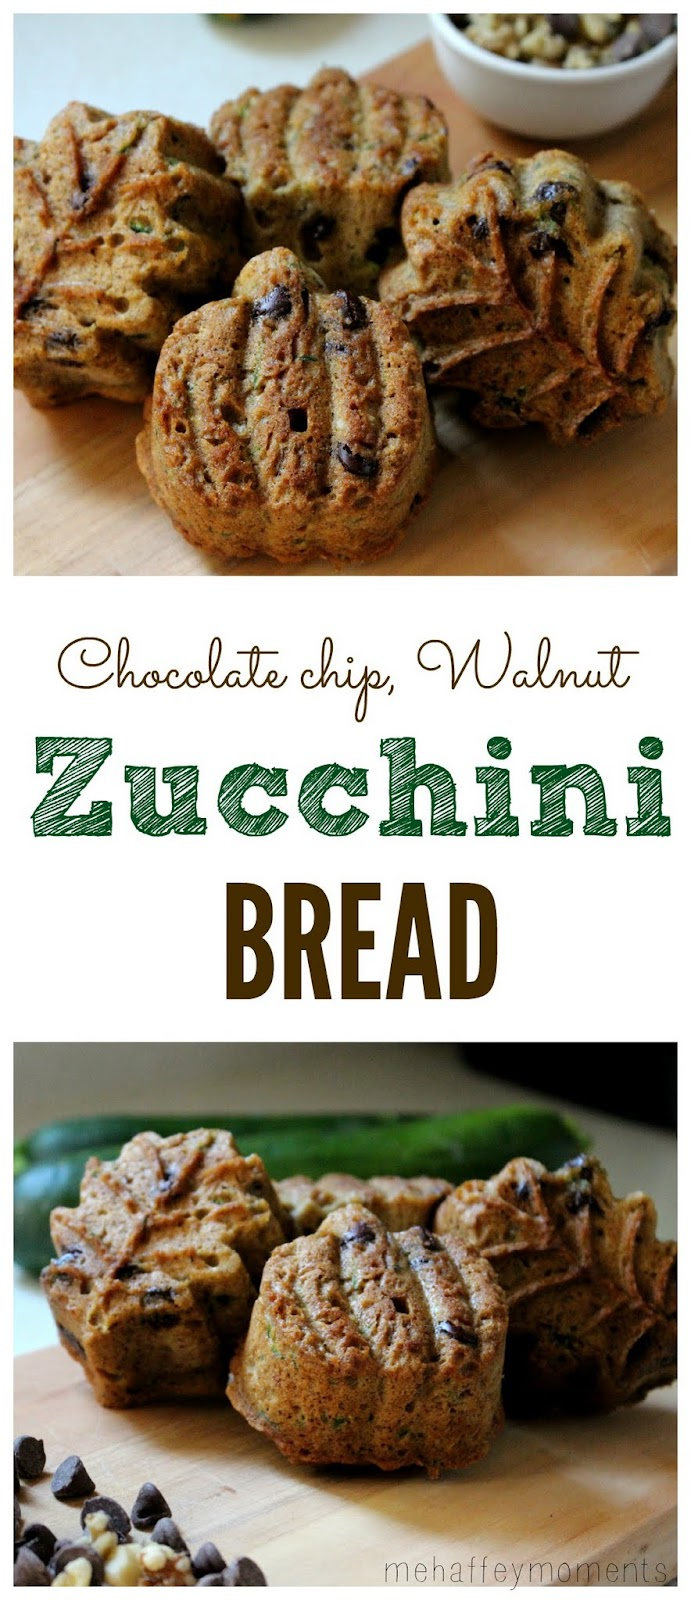 chocolate chip walnut zucchini bread Pinterest graphic